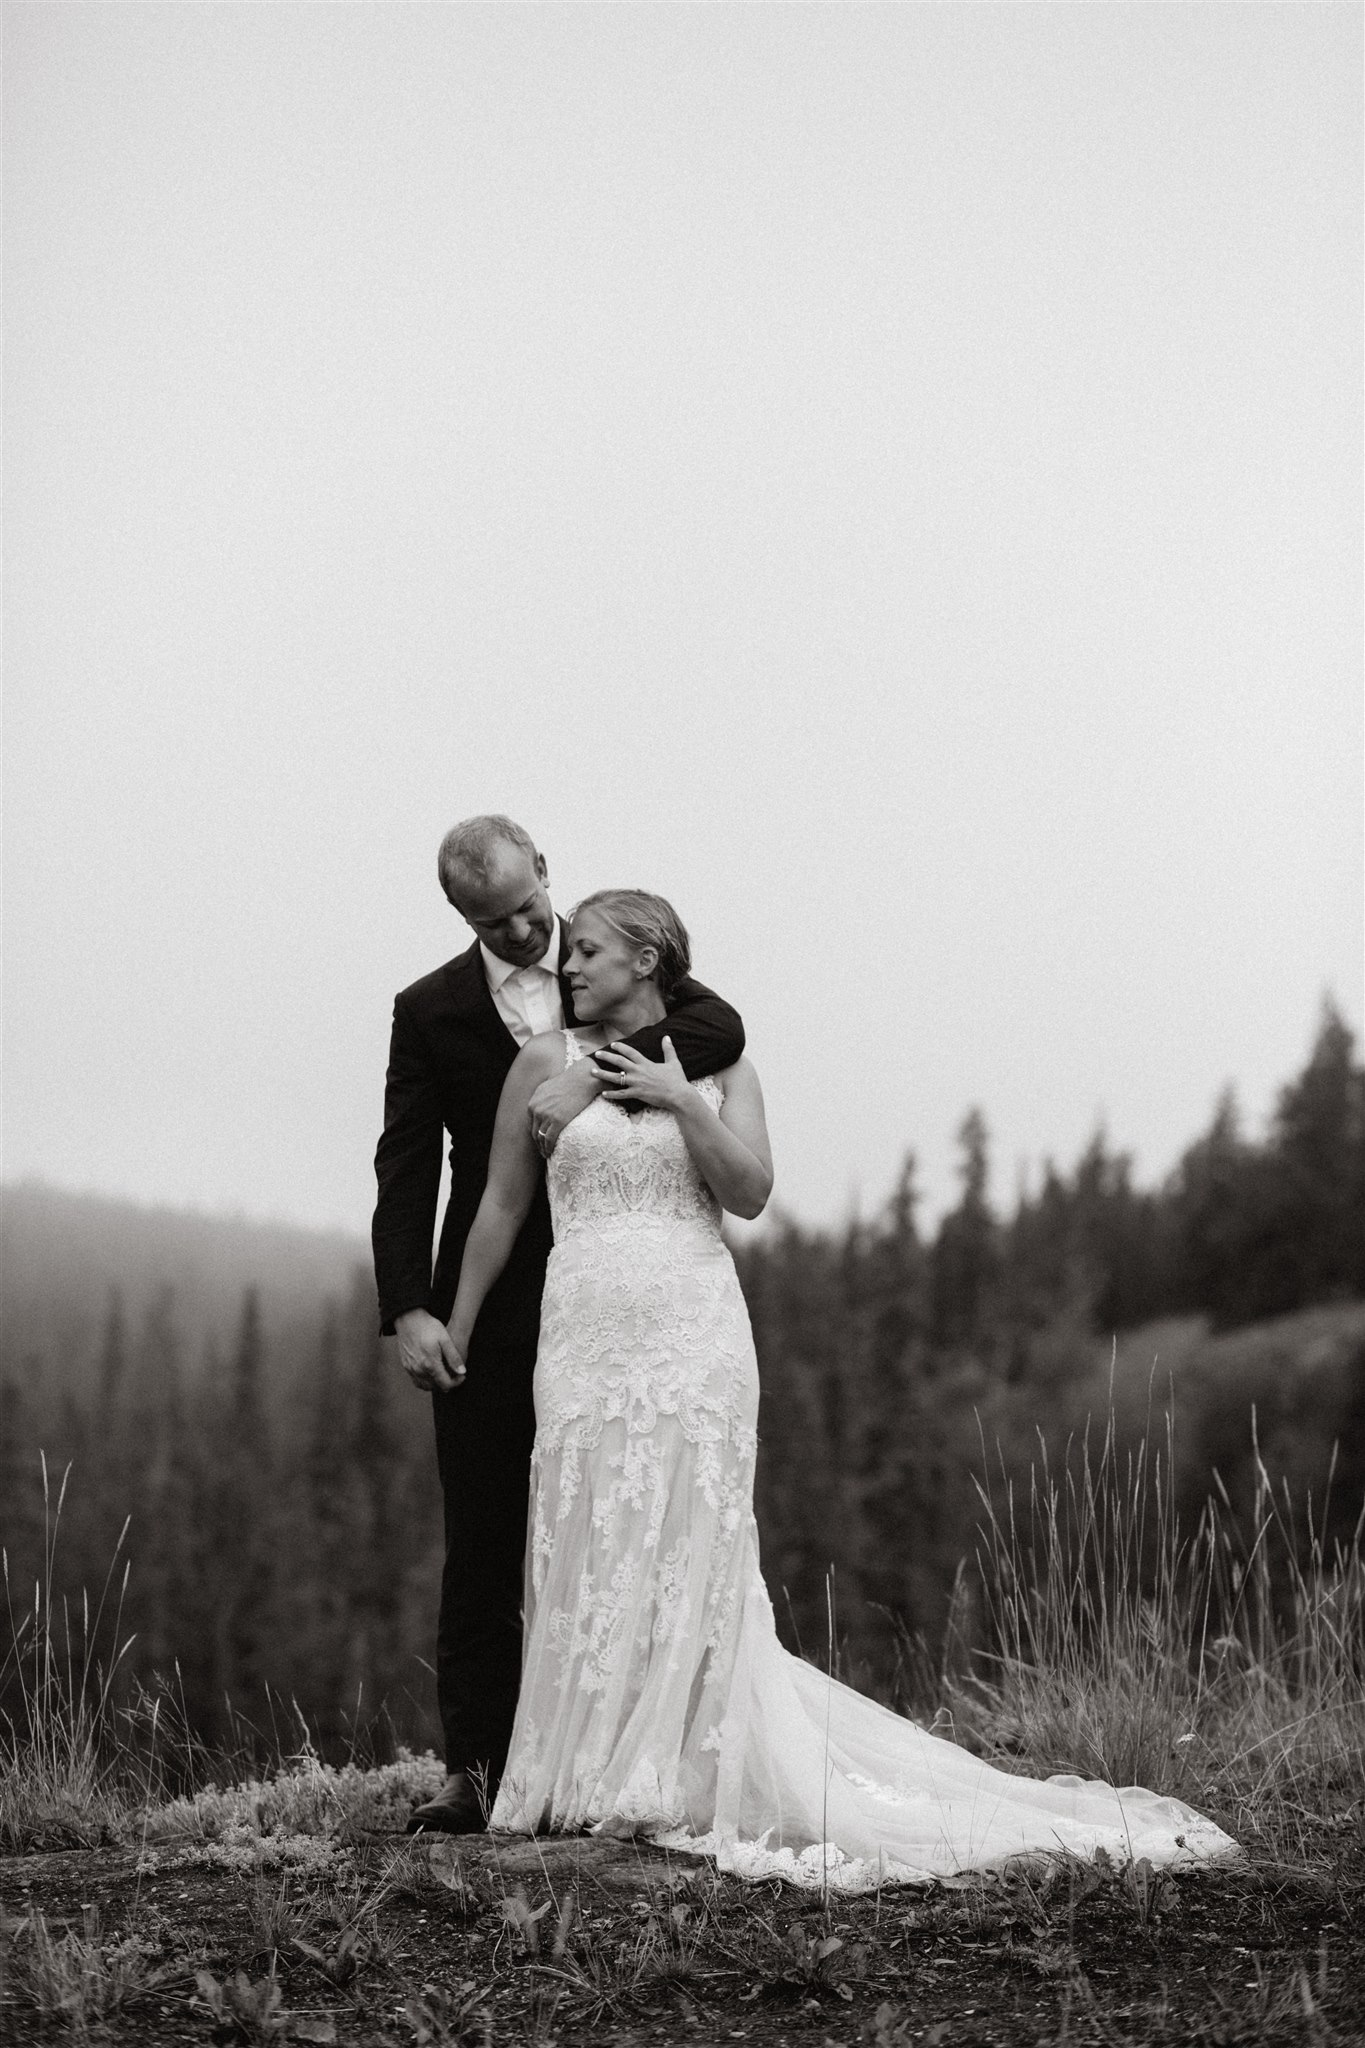 Nicole and Alan's adventure wedding in Whitehorse, Yukon